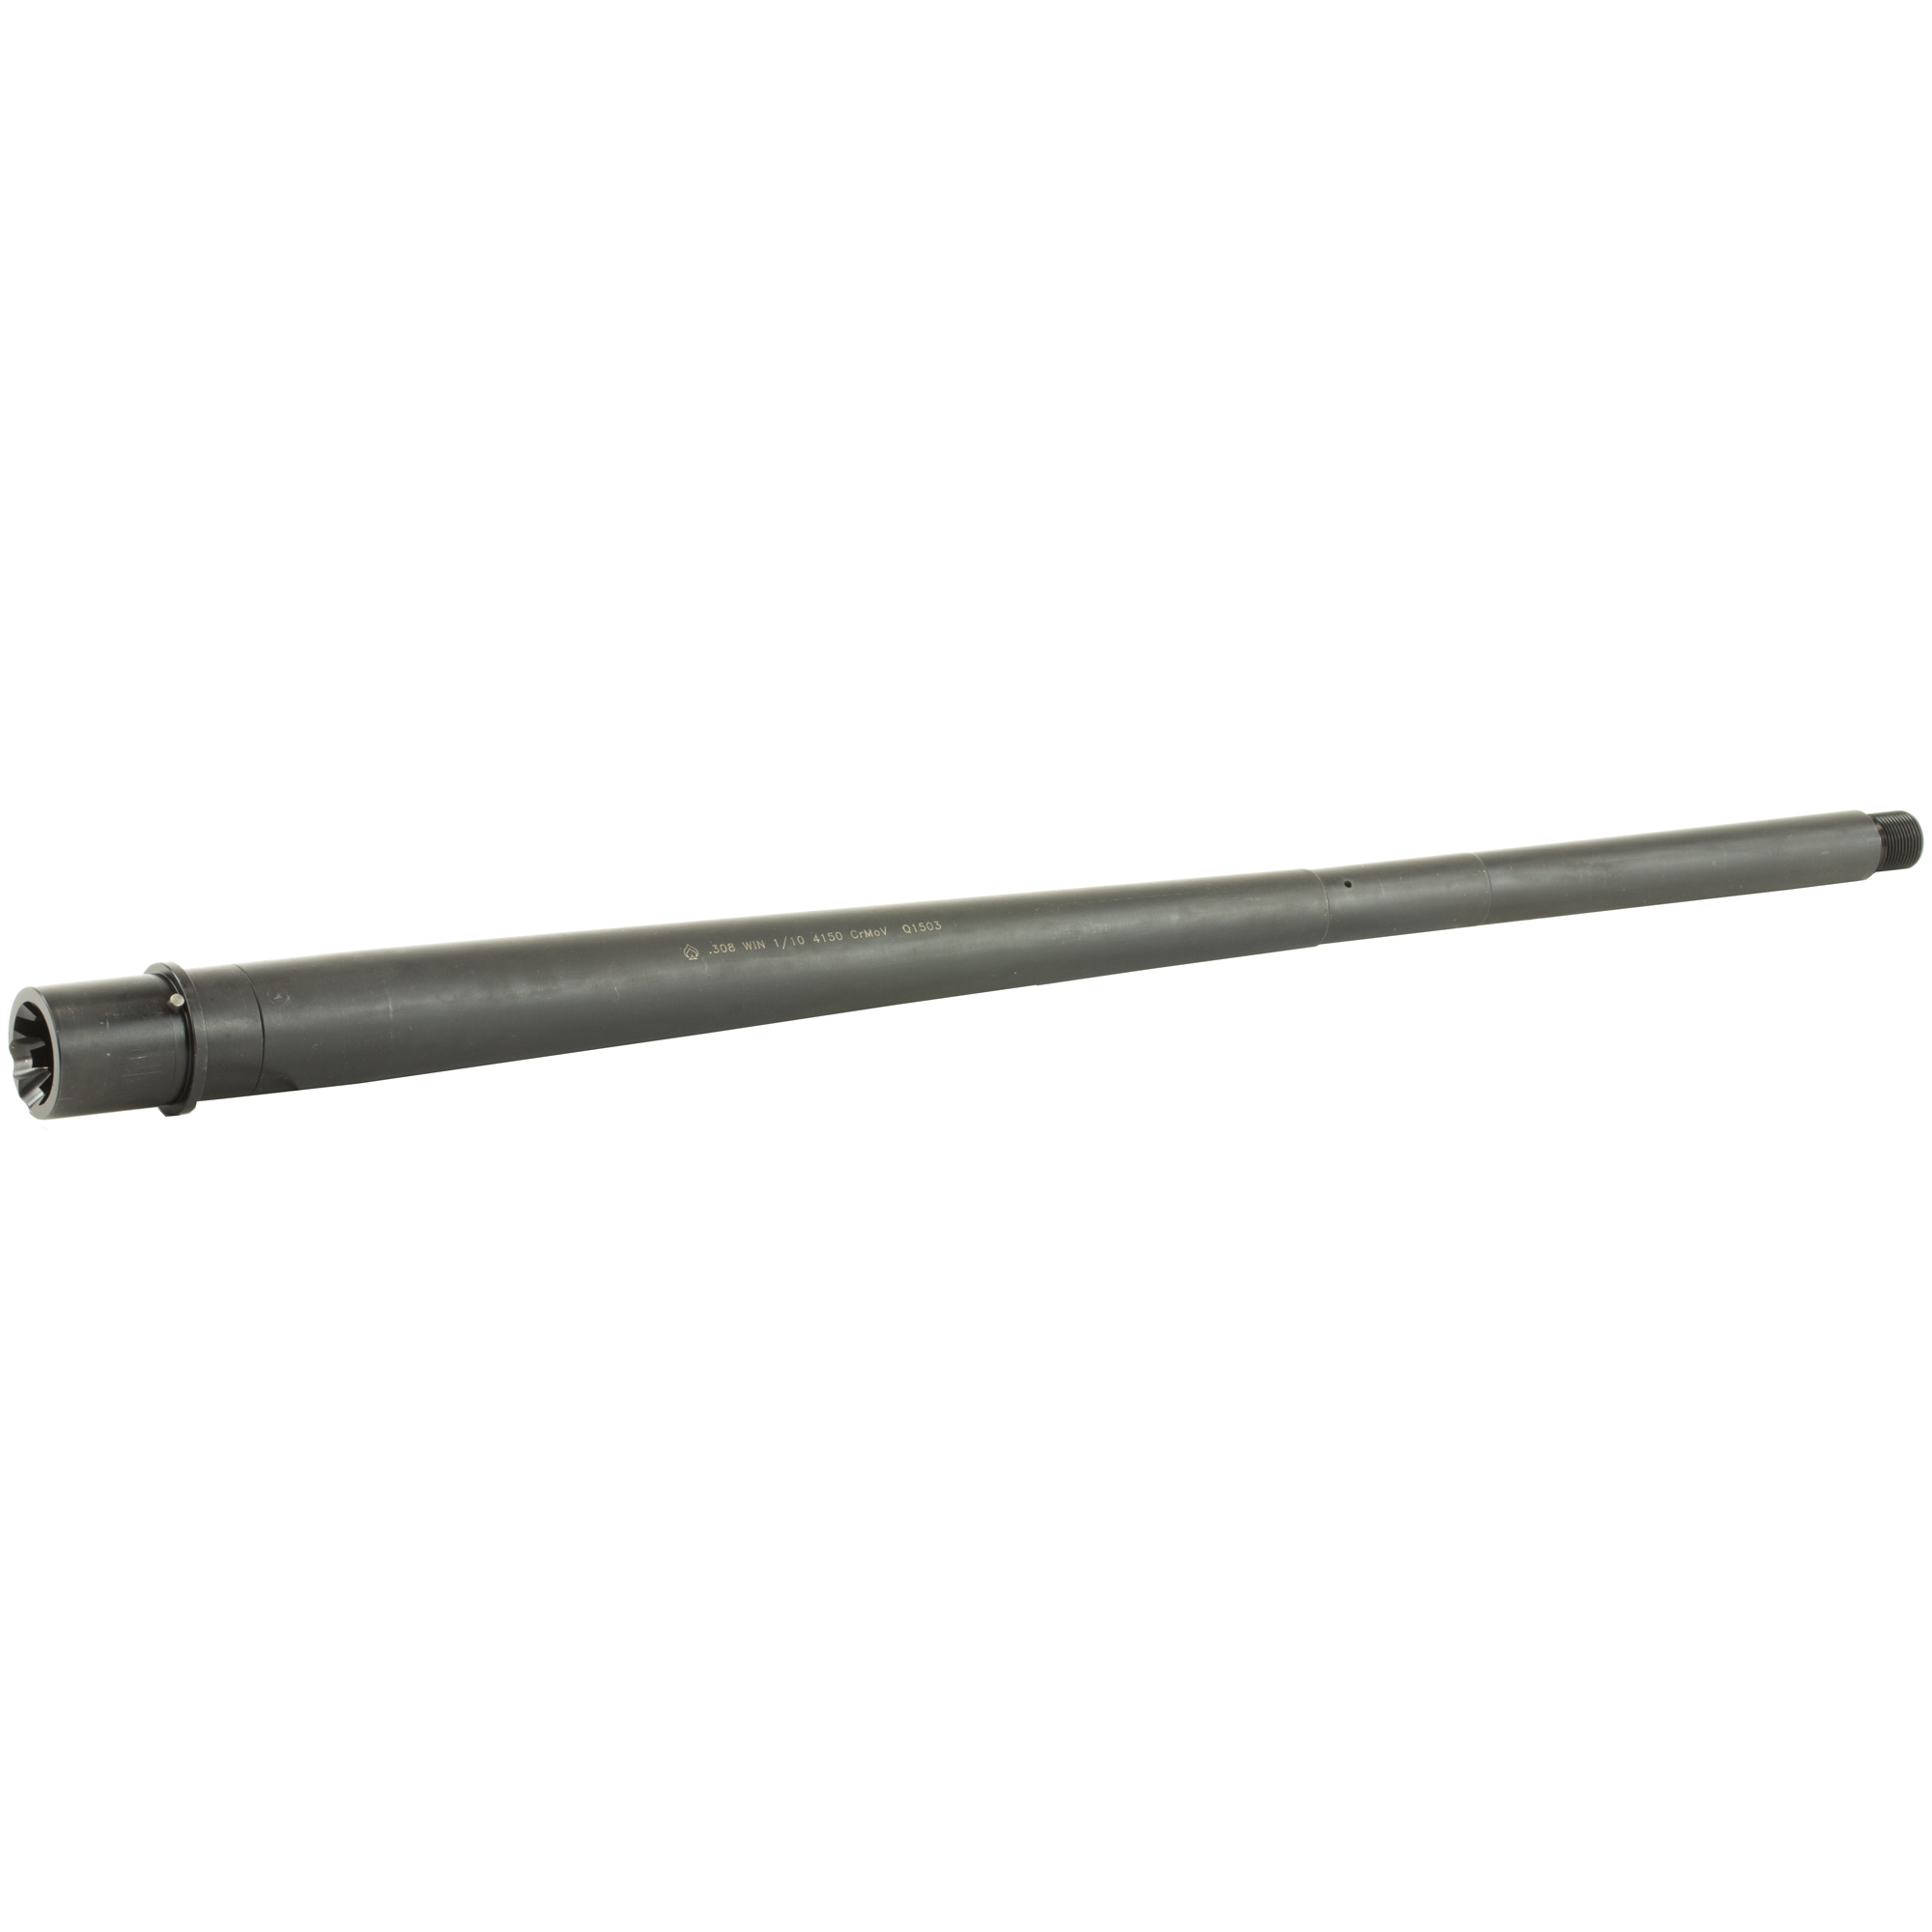 This .308 chambered (DPMS style) 20 inch Heavy Profile Modern Series Barrel is machined from 4150 Chrome Moly Vanadium steel with a QPQ Corrosion Resistant Finish and QPQ coated M4 feed ramp extension.